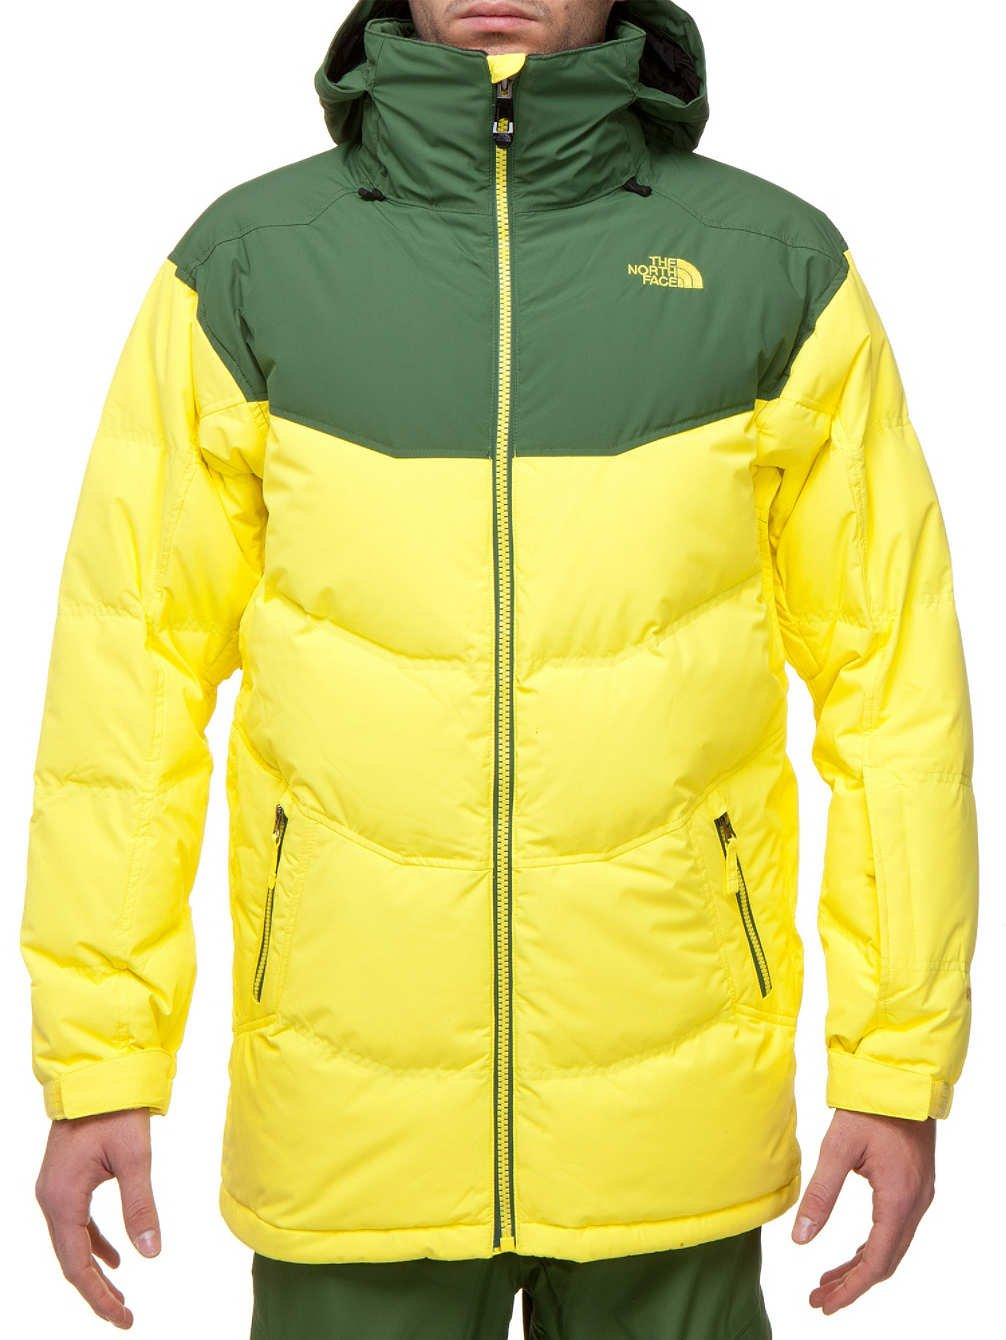 code promo a7605 3e56a The north face - THE NORTH FACE - Veste Ski Homme - KNUCKLE ...